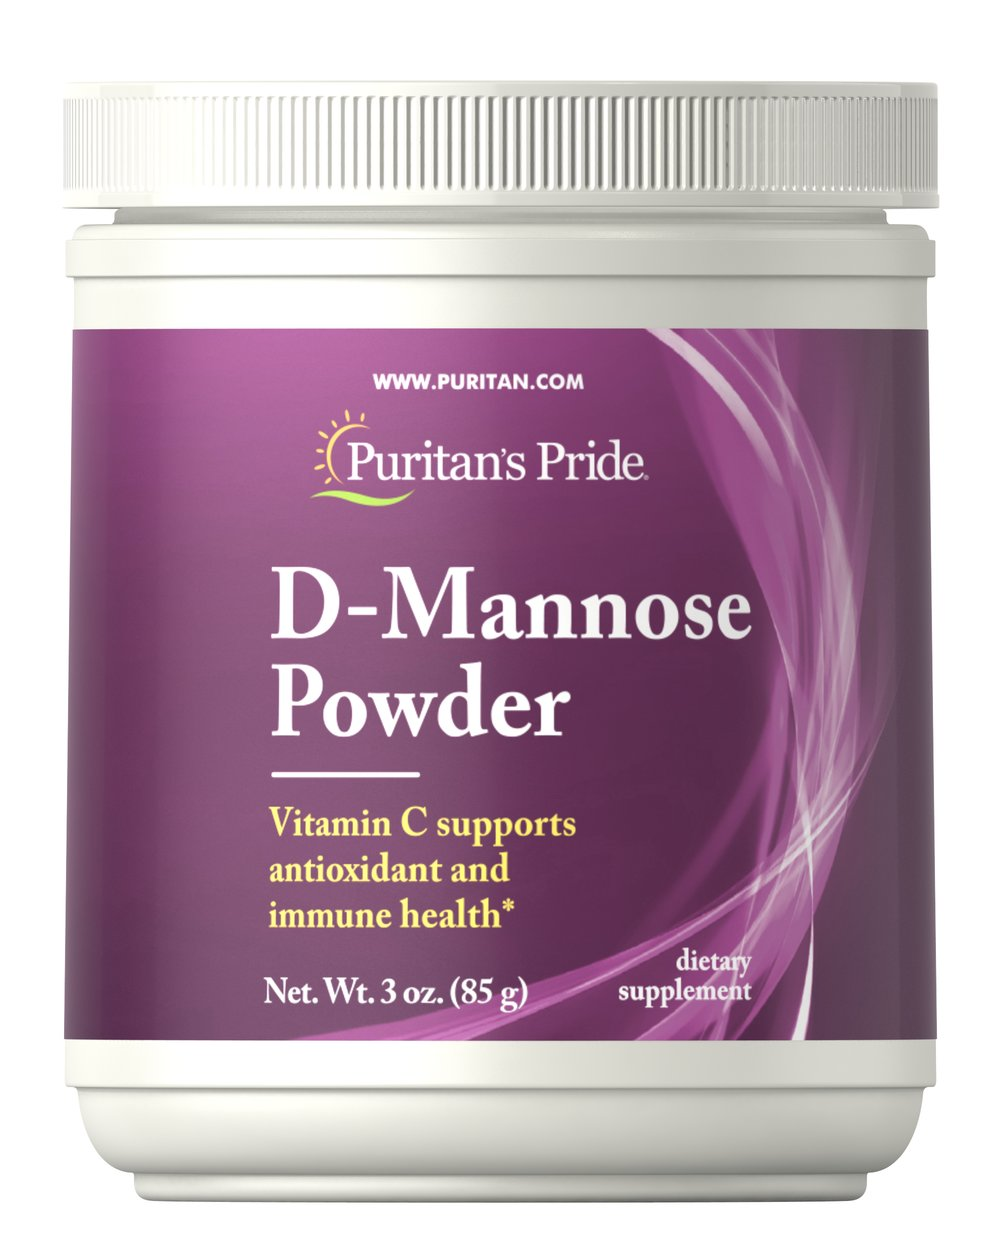 D-Mannose Powder Thumbnail Alternate Bottle View